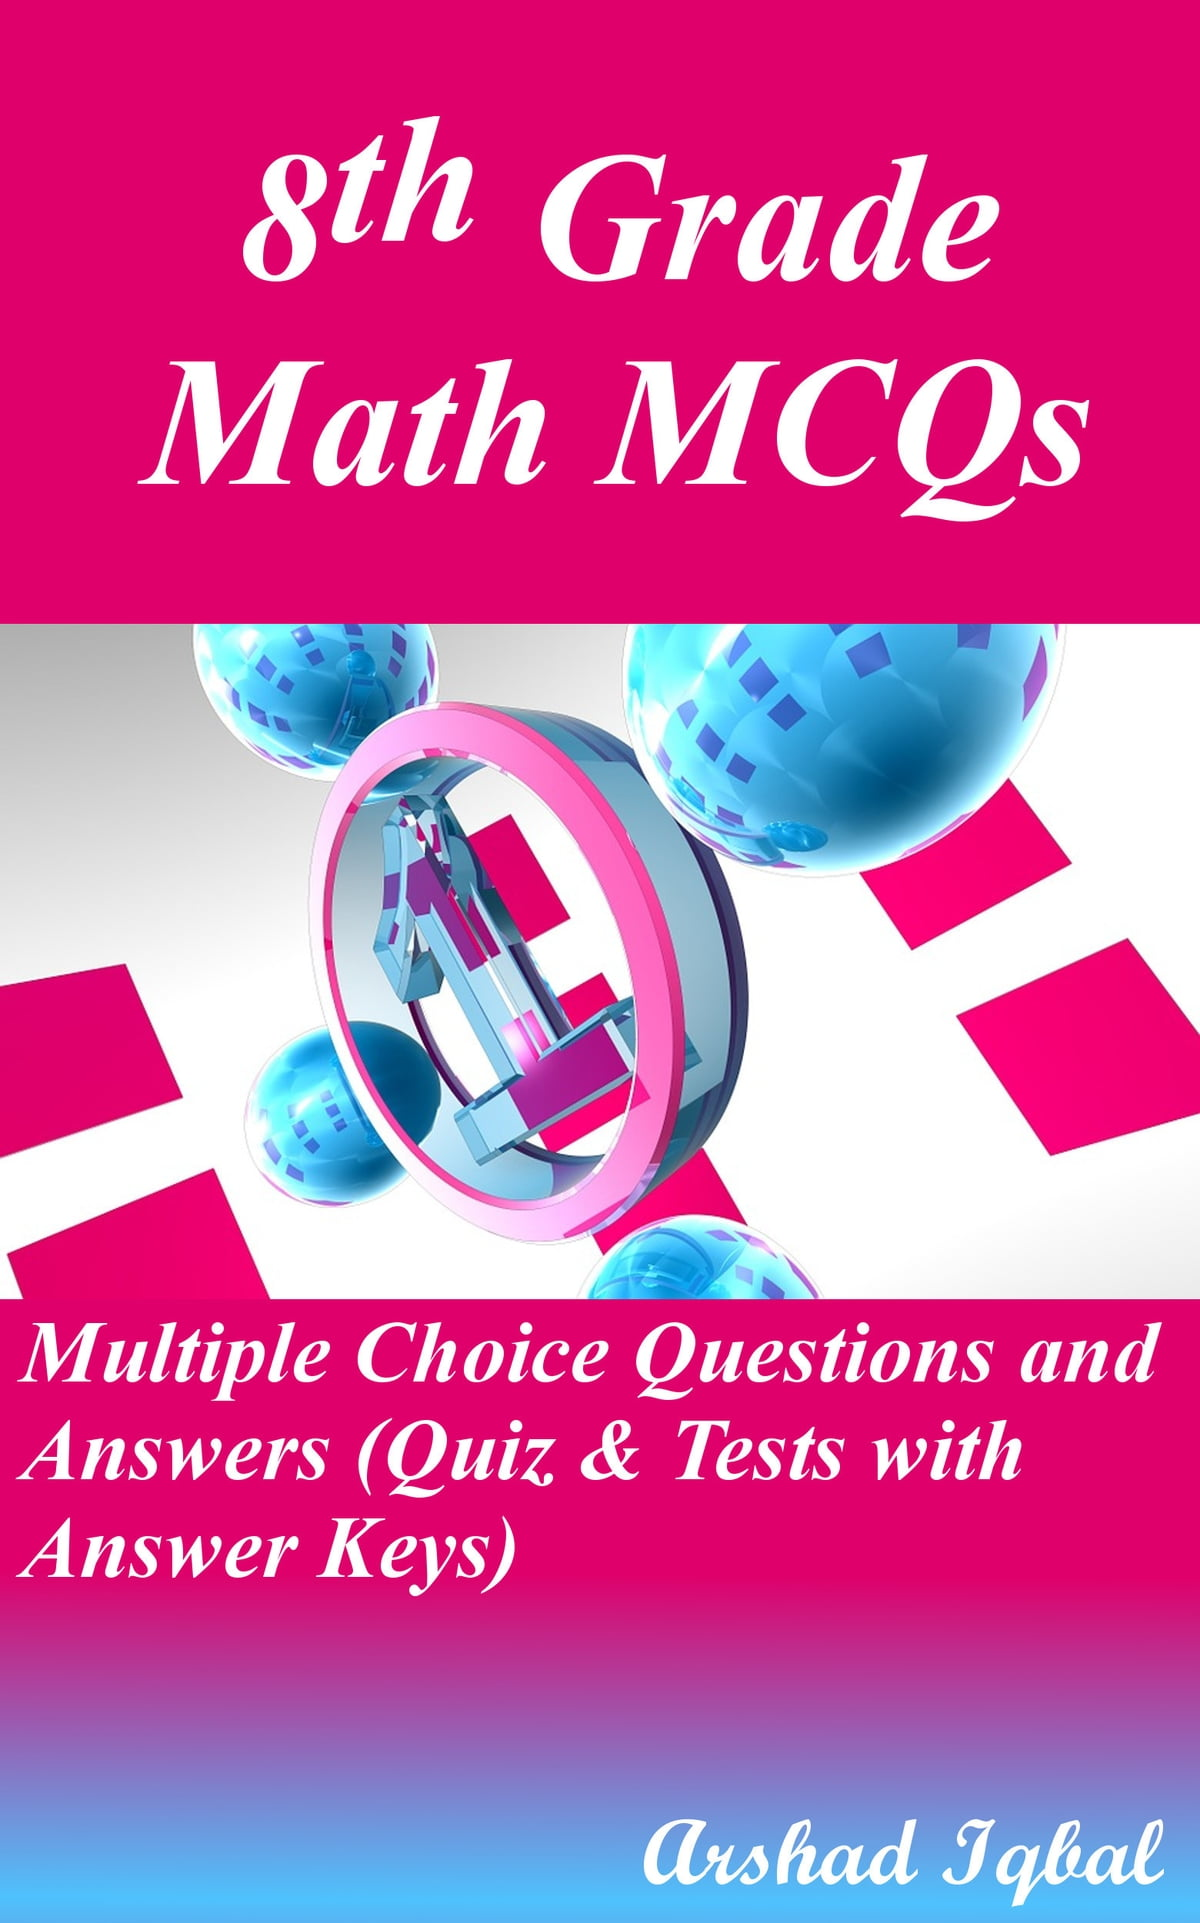 8th Grade Math MCQs Multiple Choice Questions And Answers Quiz Tests With Answer Keys Ebook By Arshad Iqbal Rakuten Kobo